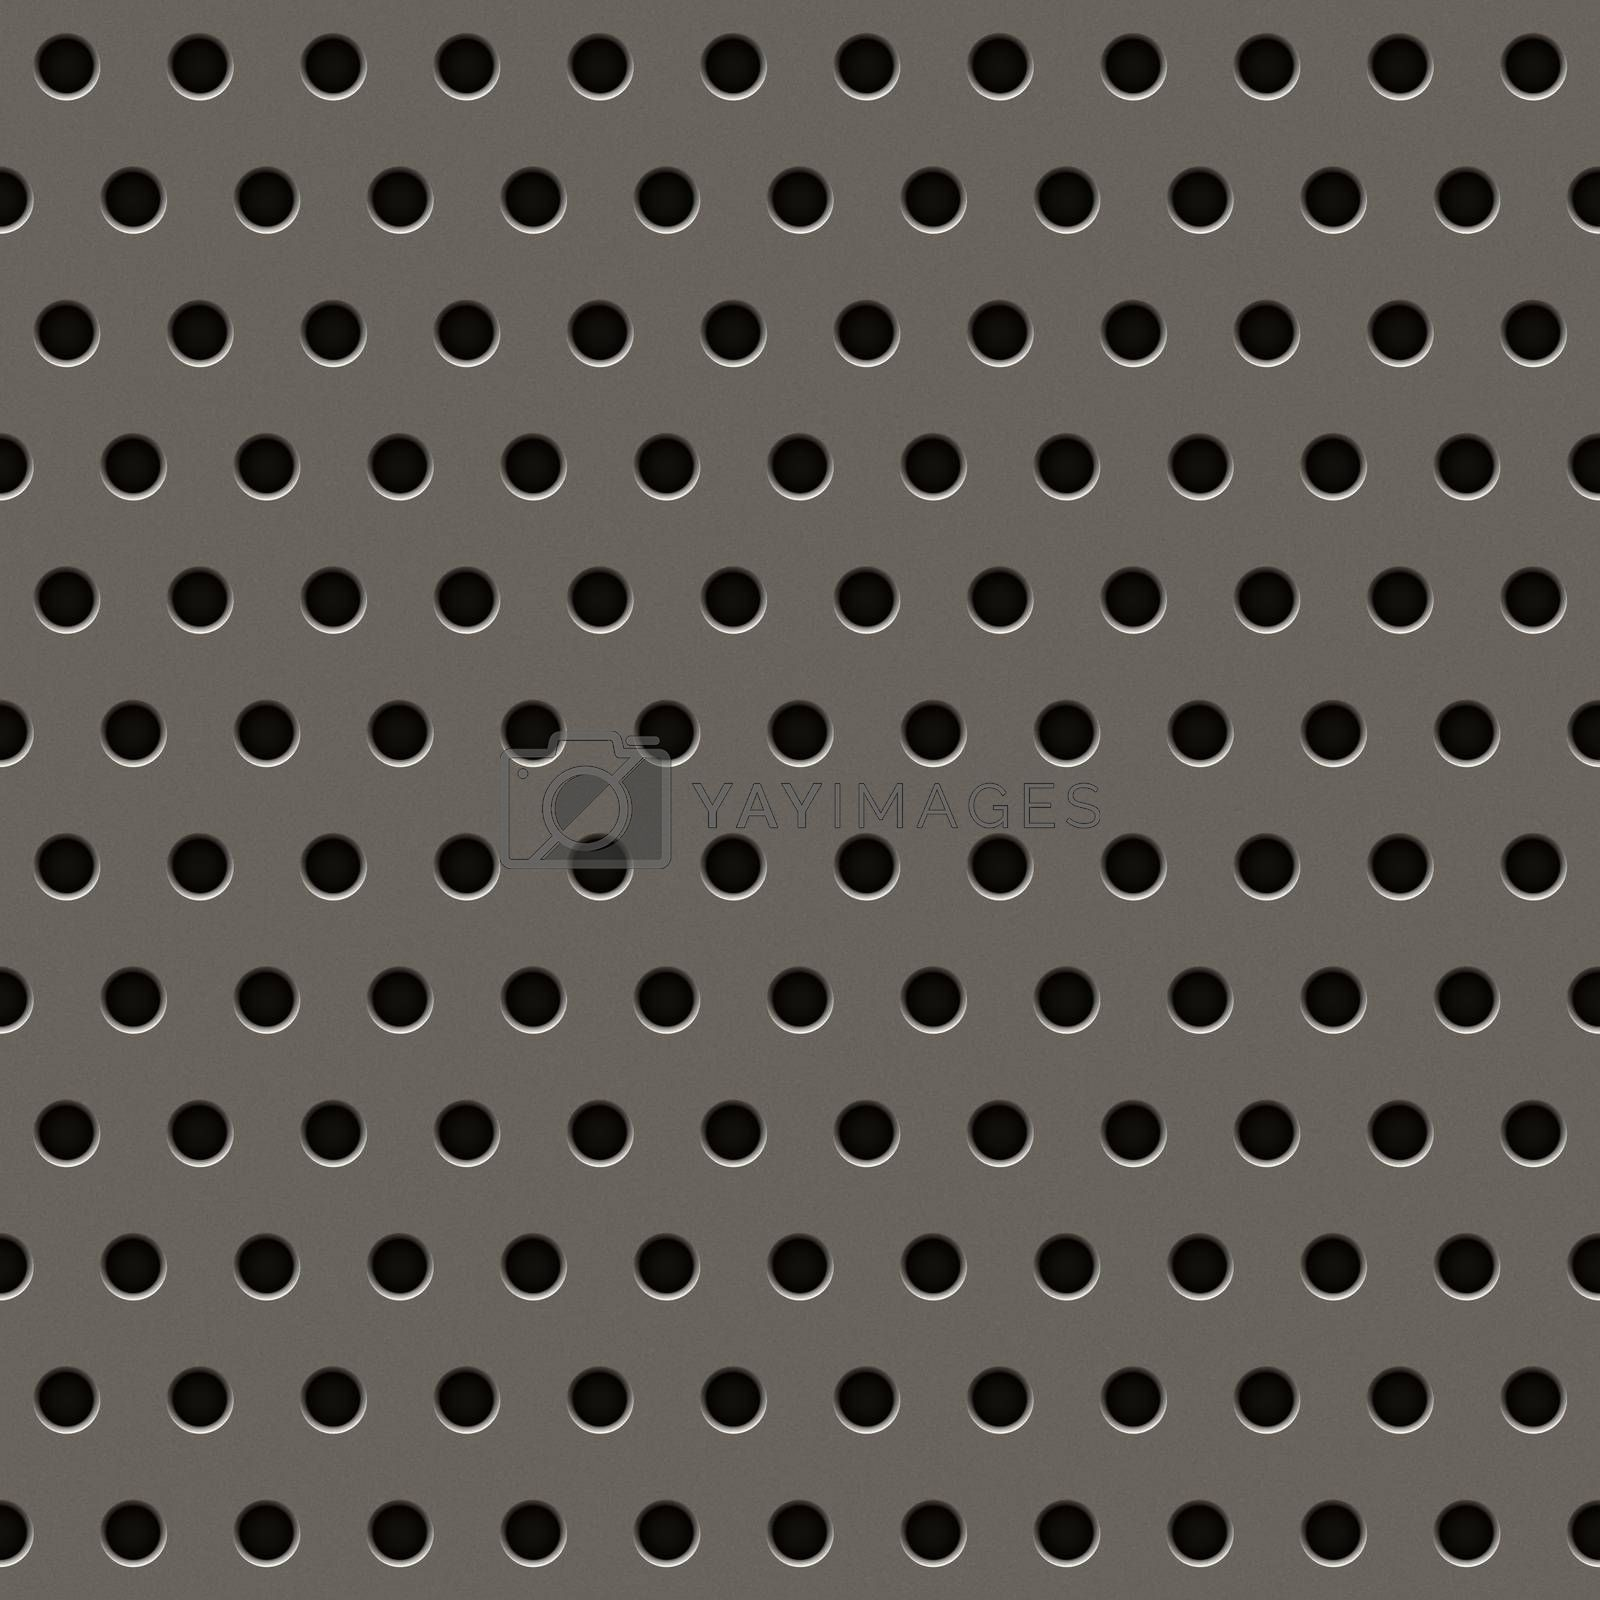 Metal grill texture in grey with circular holes.